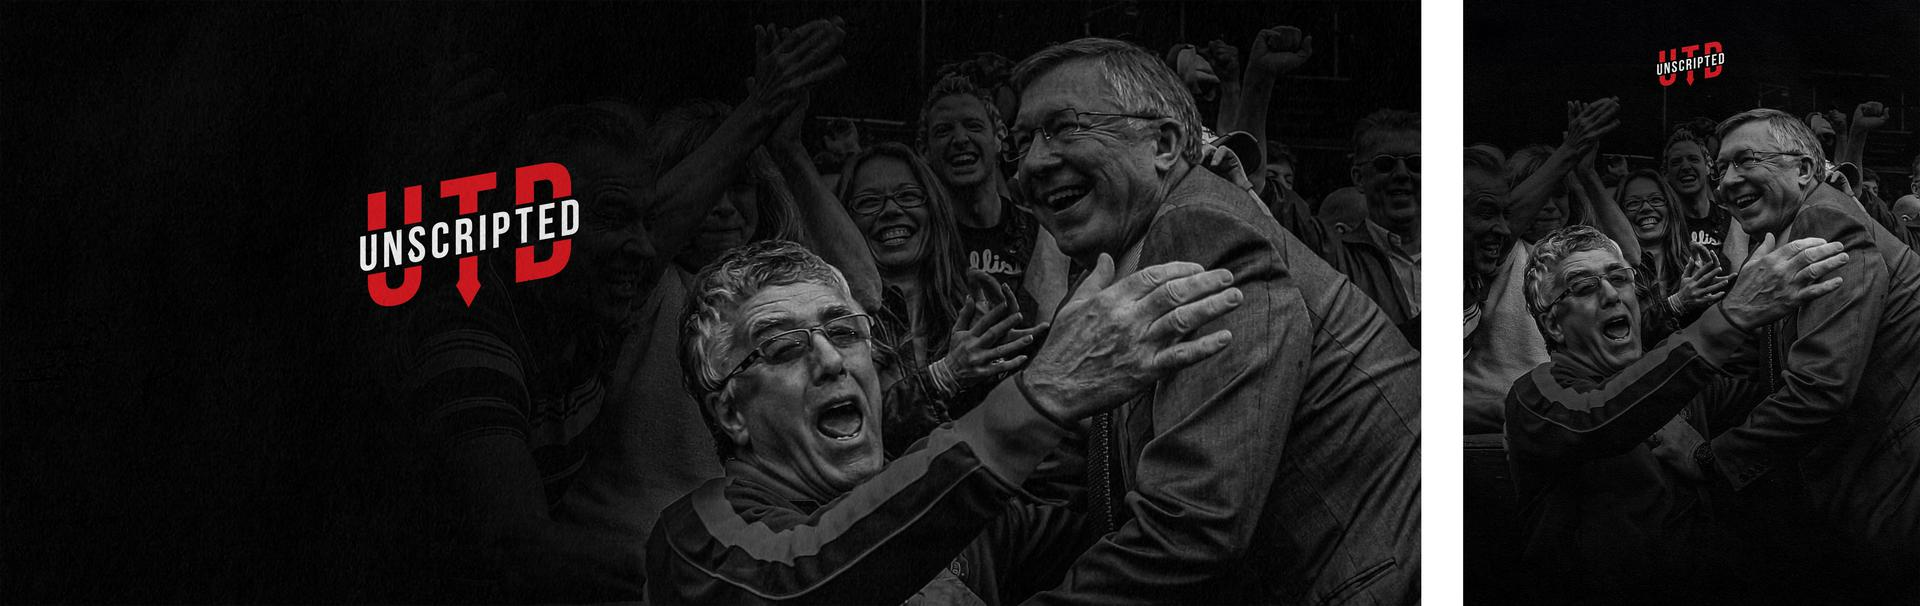 Designed image for UTD Unscripted with Albert Morgan and Sir Alex Ferguson celebrating a goal at Old Trafford